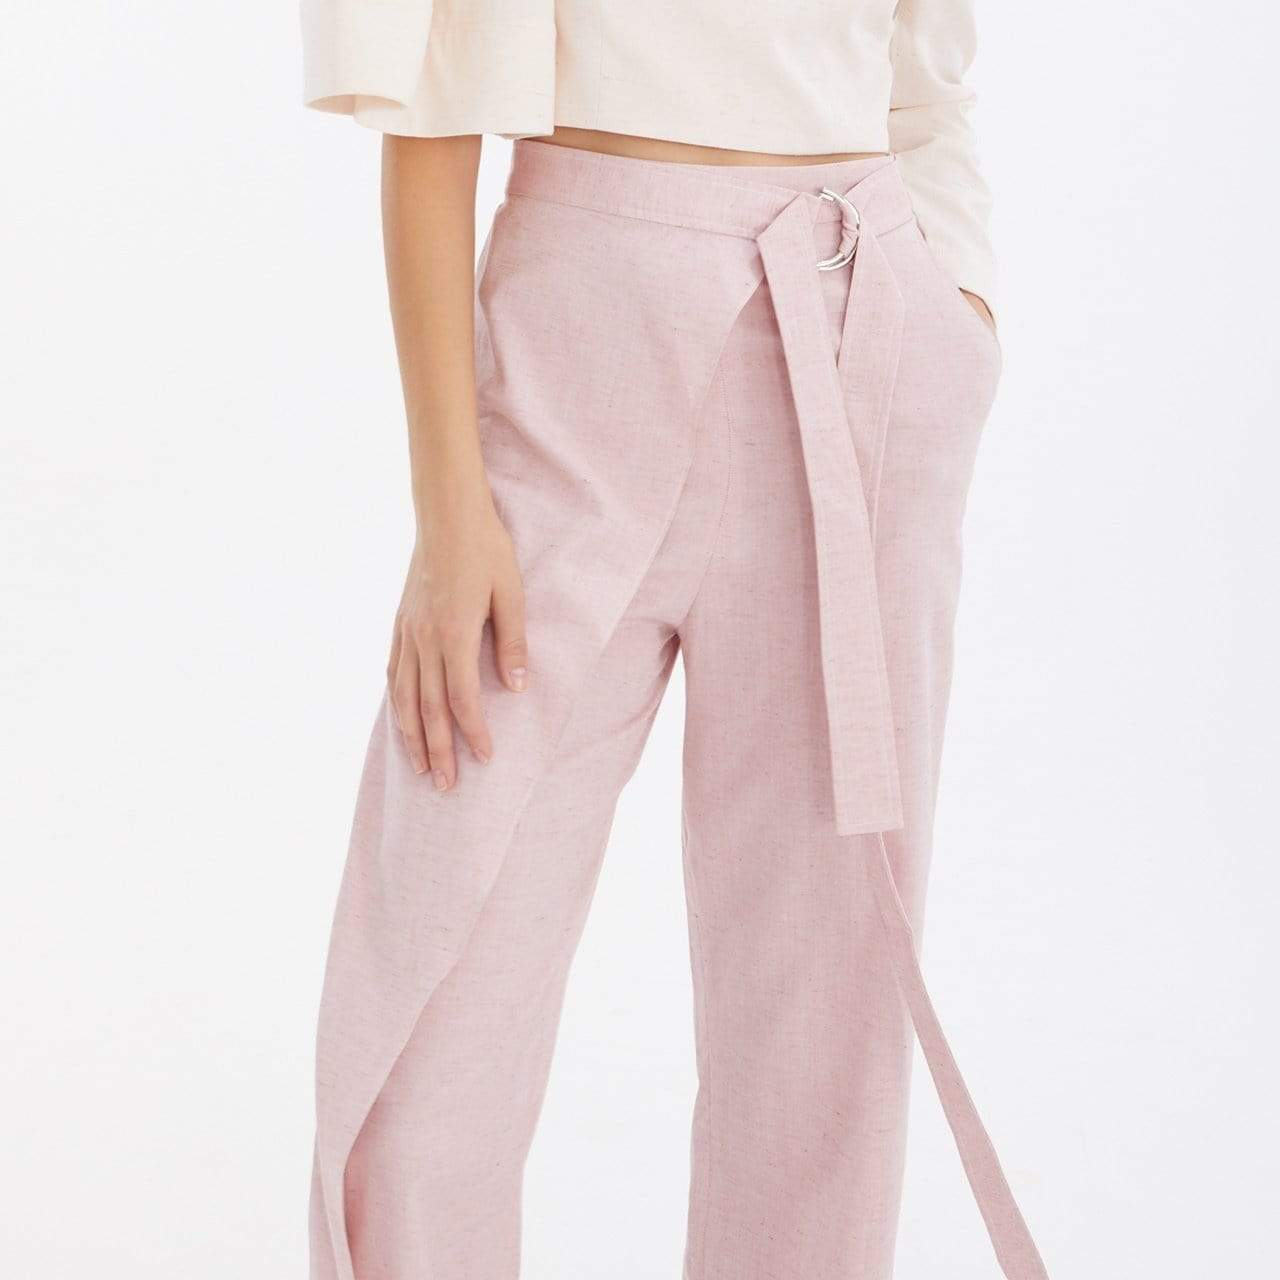 TAKTAI Pants S / Pale Red Semi-Wraped Pants